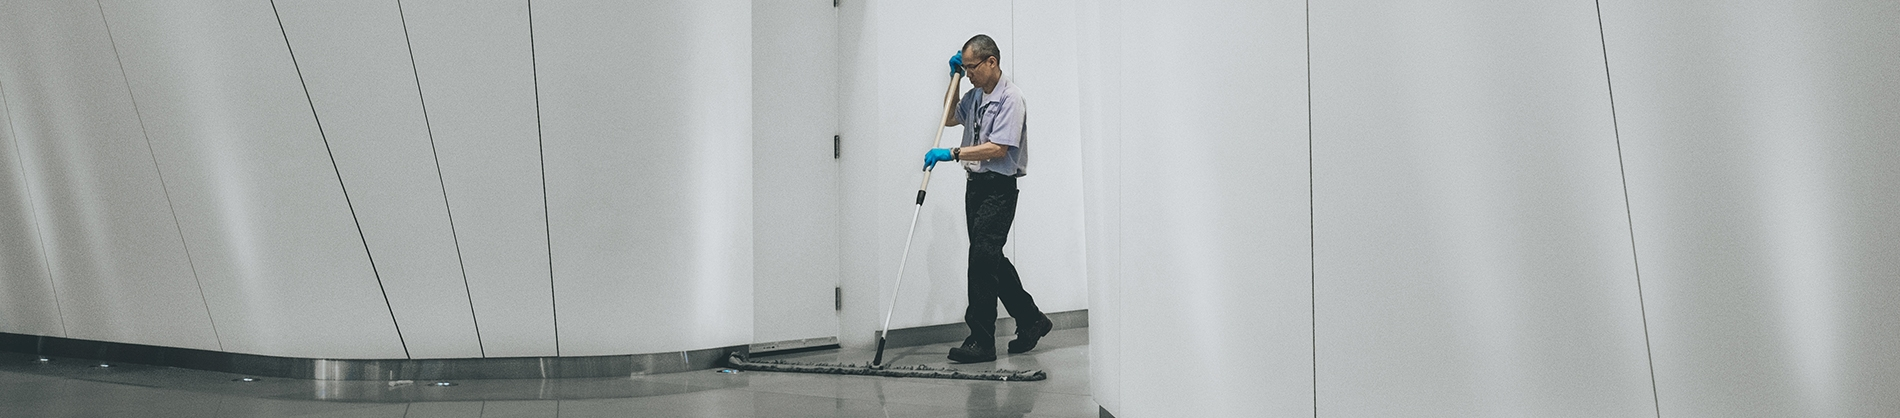 A cleaner mopping the floor of a office building